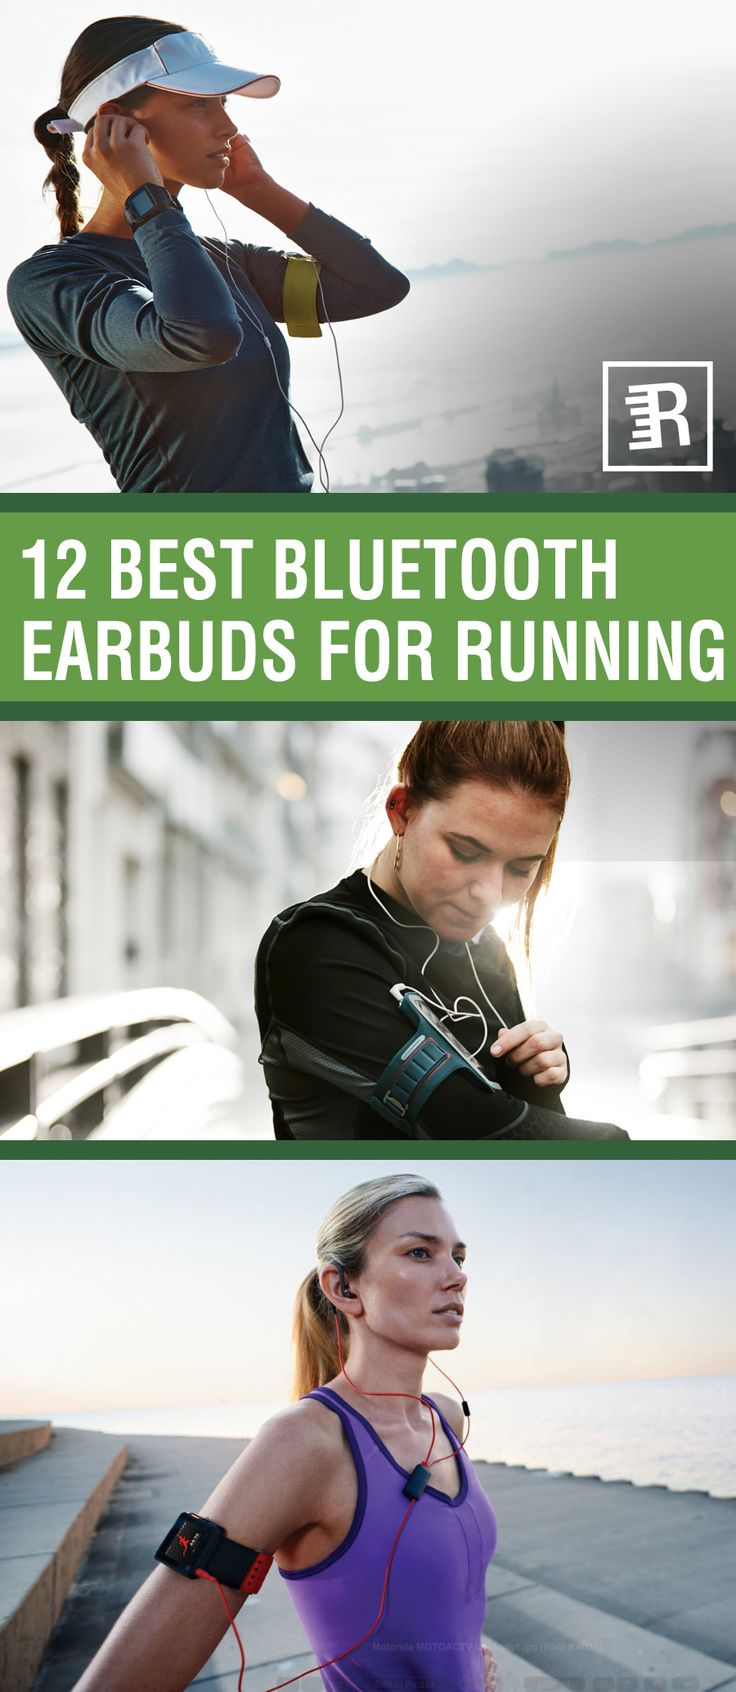 Without music, running would be a whole lot harder for most of us. The beat-driven tunes that power us through workouts give us the surge we need to reach our goals. This article features some of the best new releases in Bluetooth running headphones on the market.